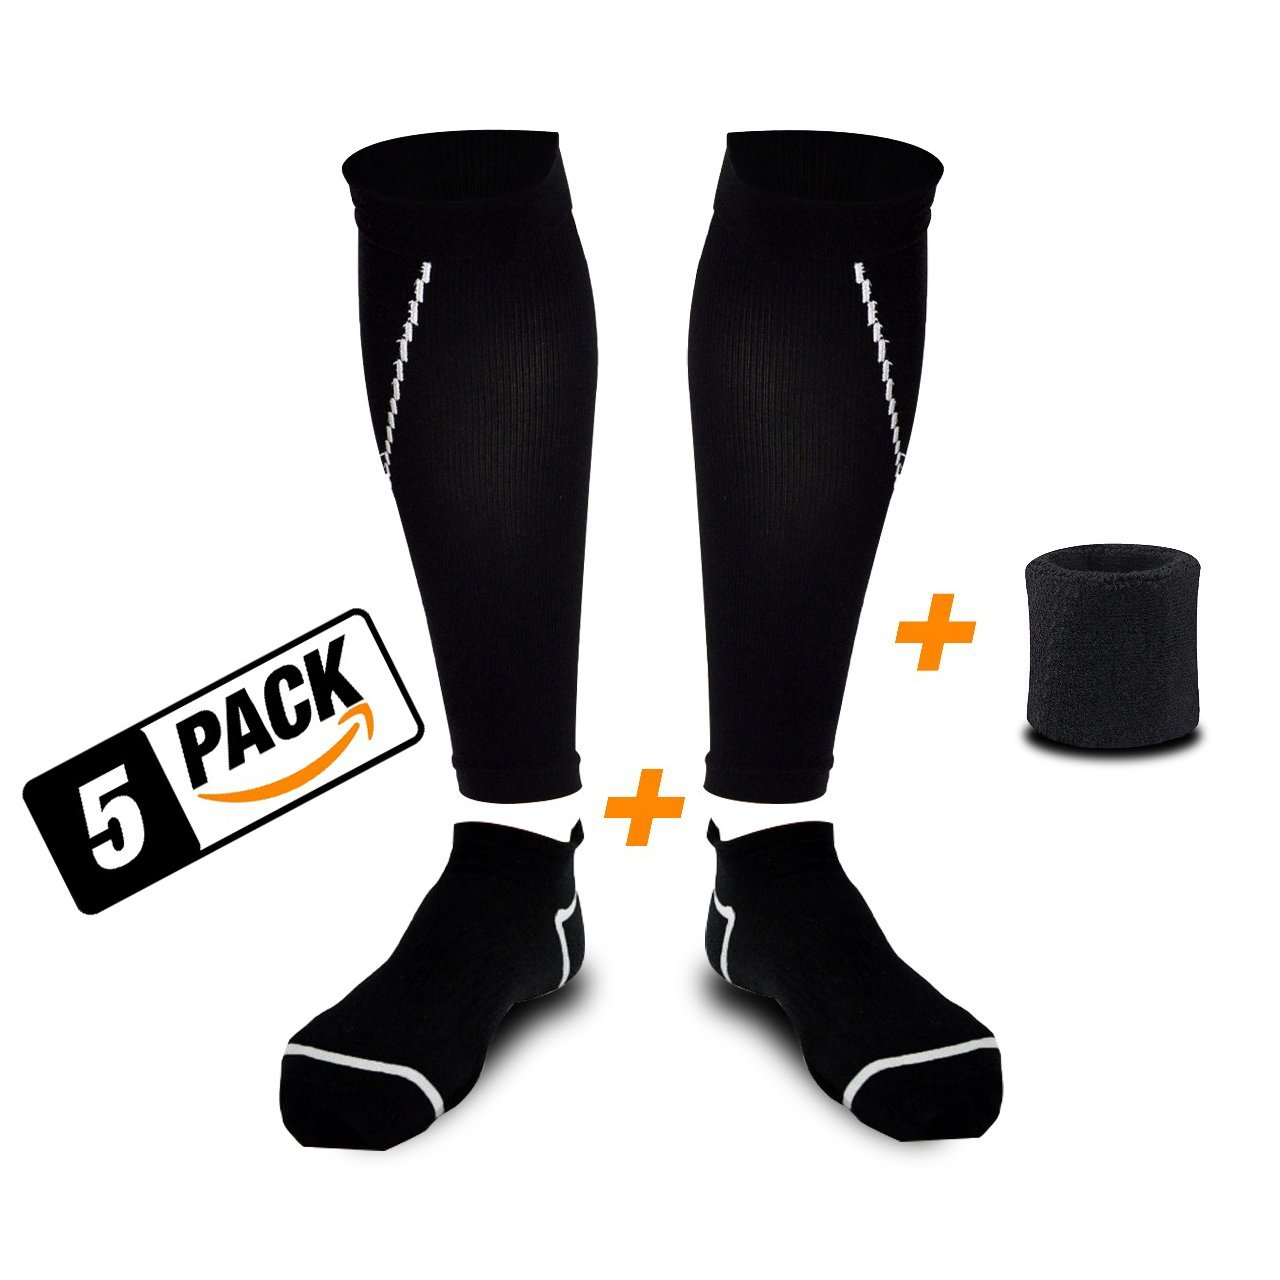 (SET OF 5) Compression Calf Sleeve + Athletic Socks + Wrist Sweatband - Best Leg Compression Socks - For Shin splint & Pain Relief - For Men & Women - Cycling , Runners , Air Travel and Nurses